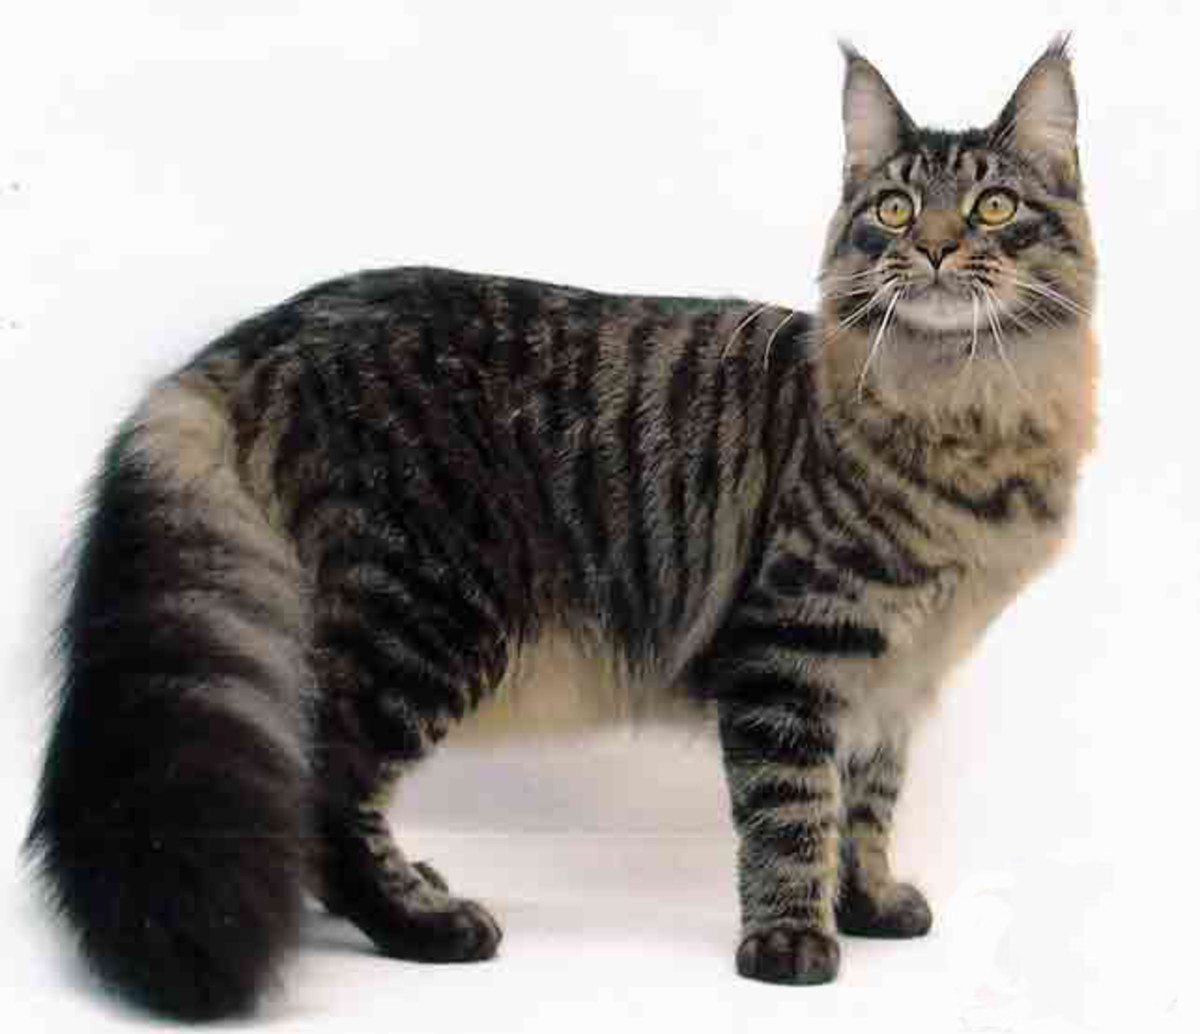 A full grown Maine Coon cat.